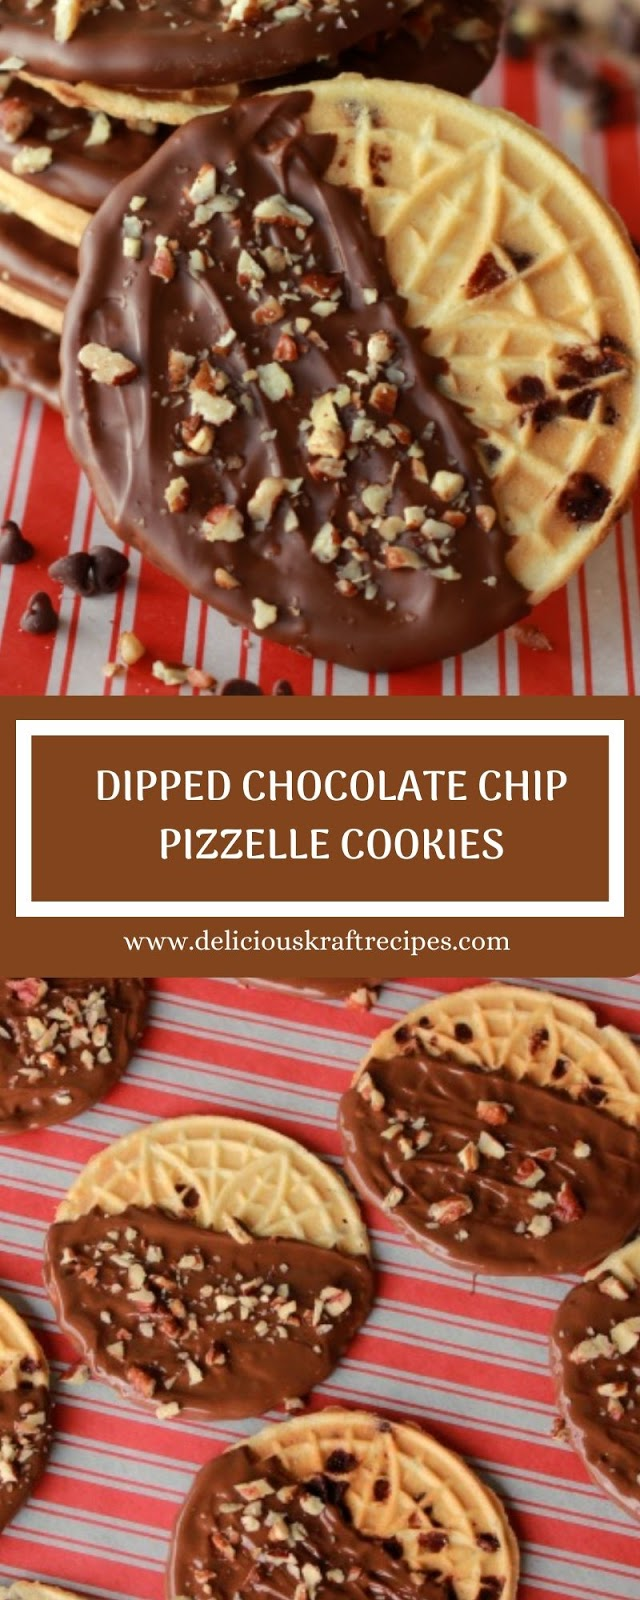 DIPPED CHOCOLATE CHIP PIZZELLE COOKIES